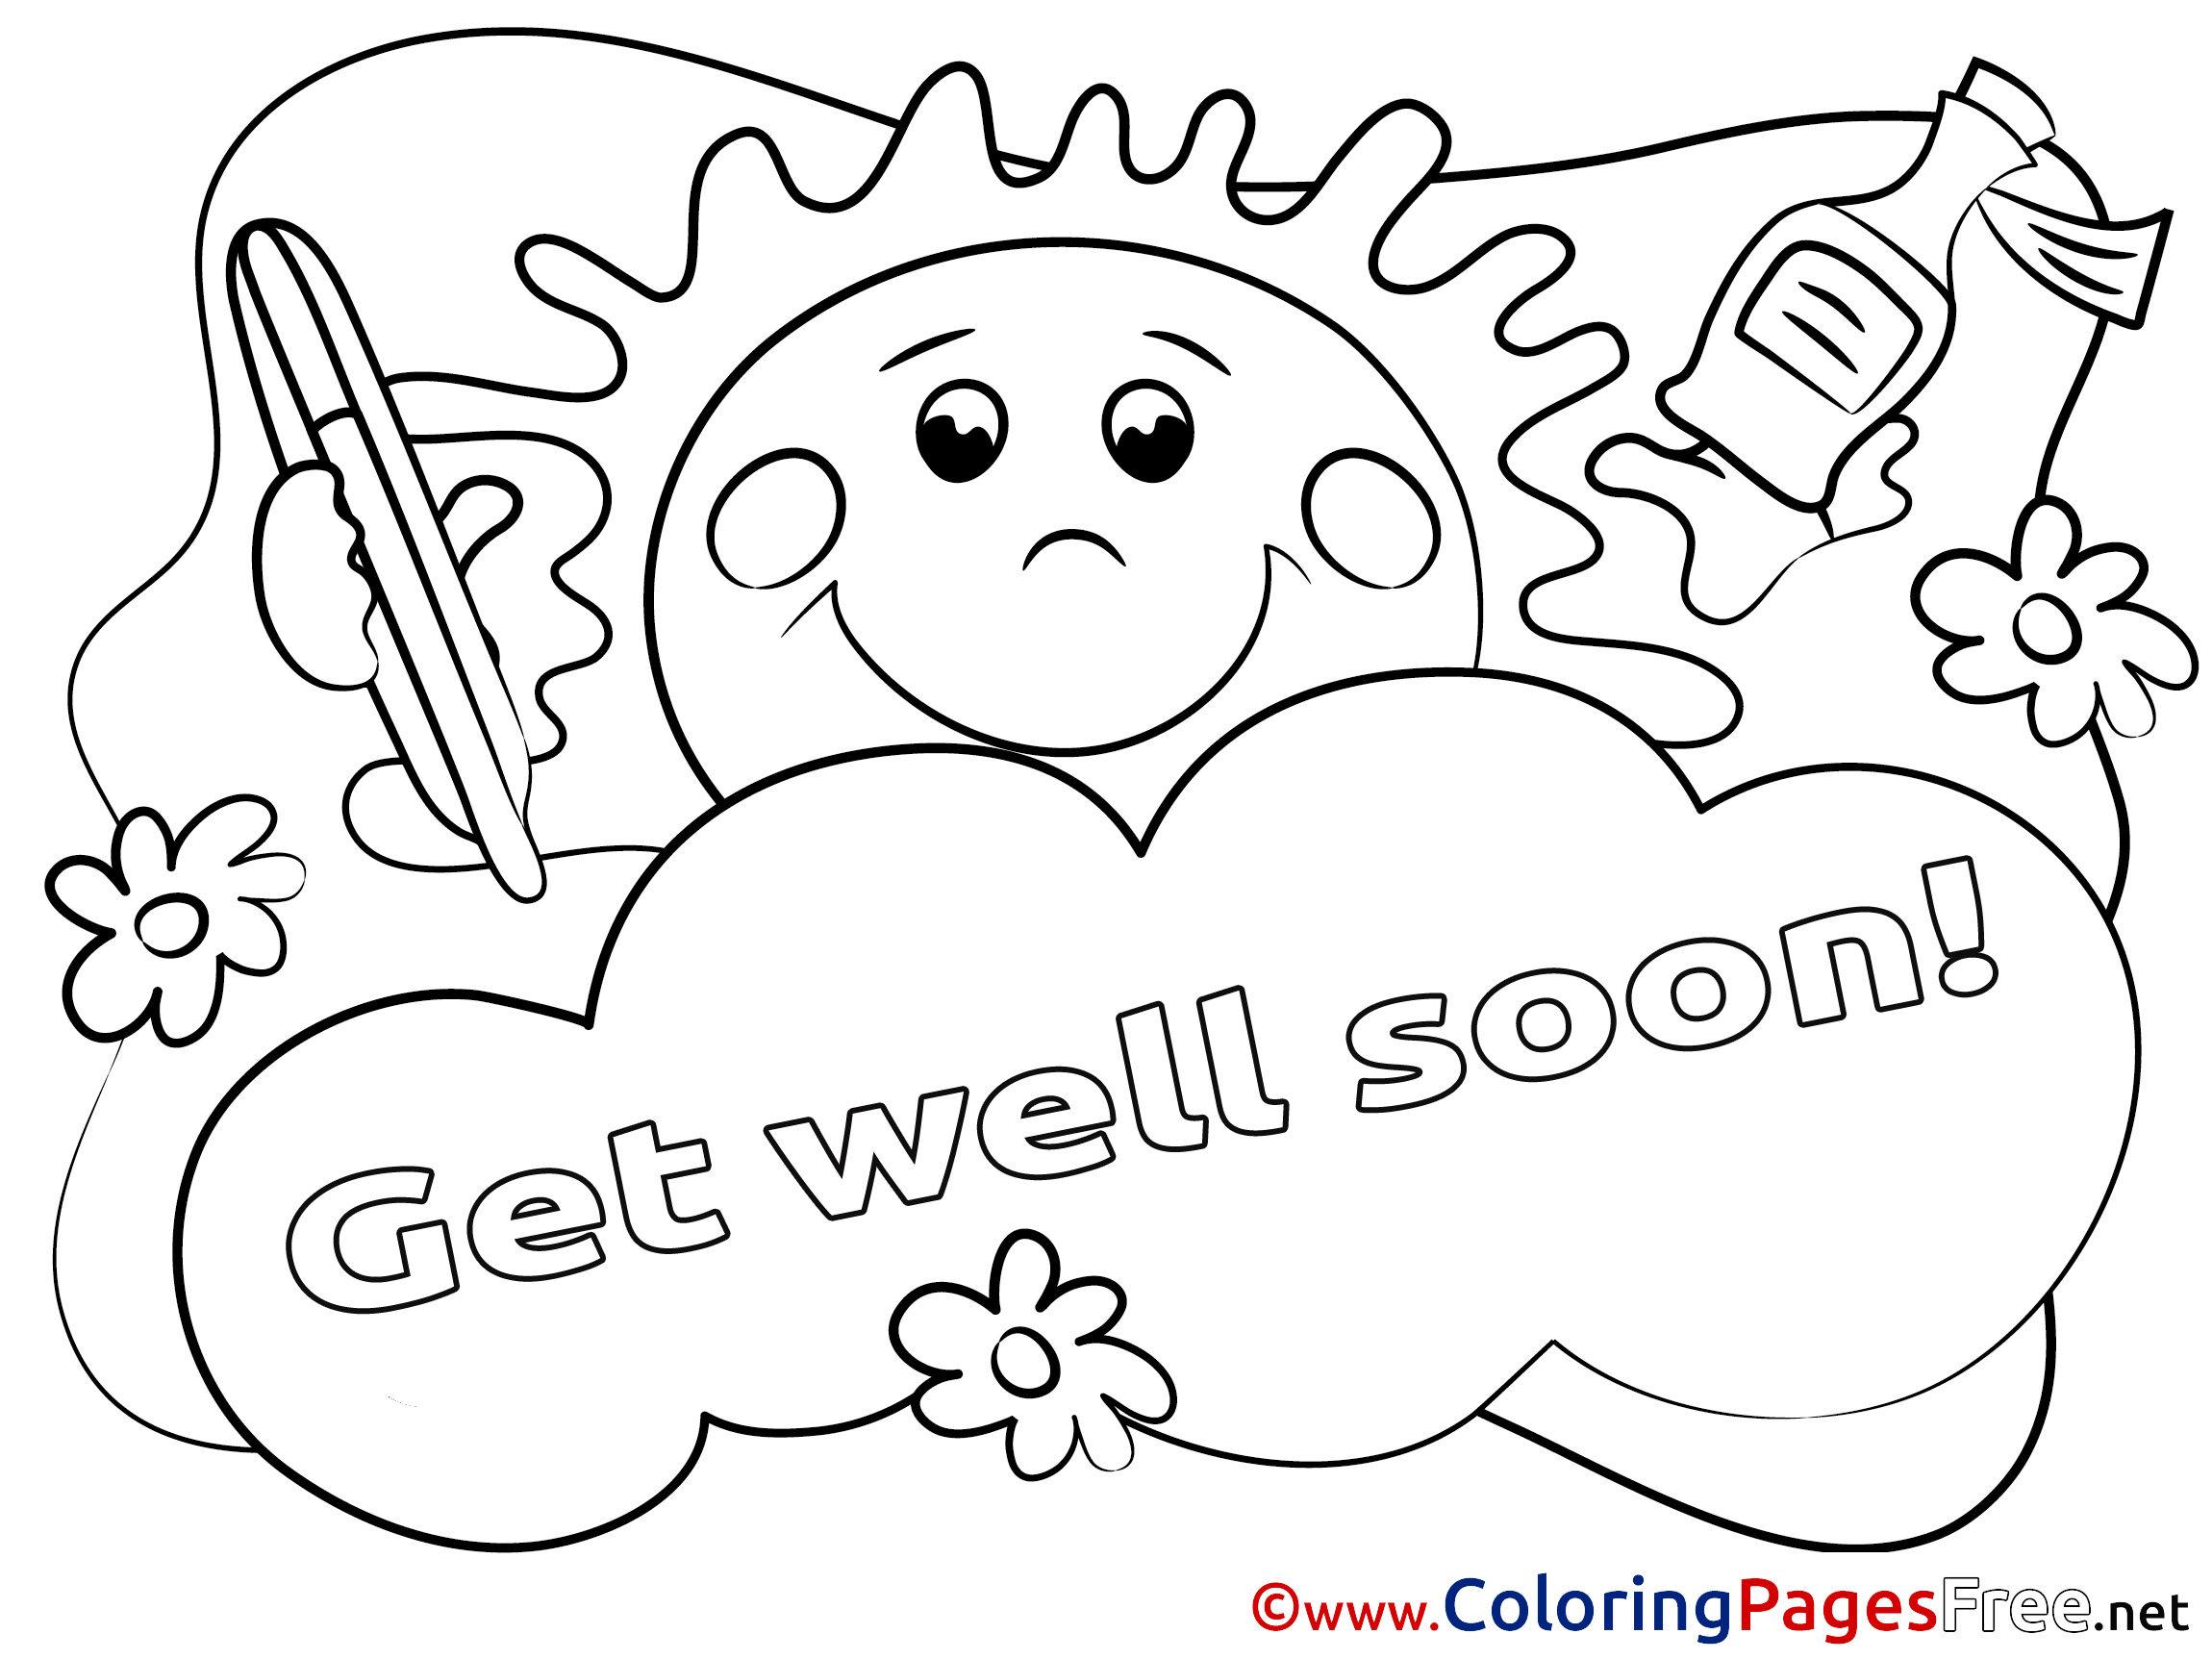 get well soon printable coloring cards feel better coloring pages at getcoloringscom free coloring soon printable get cards well